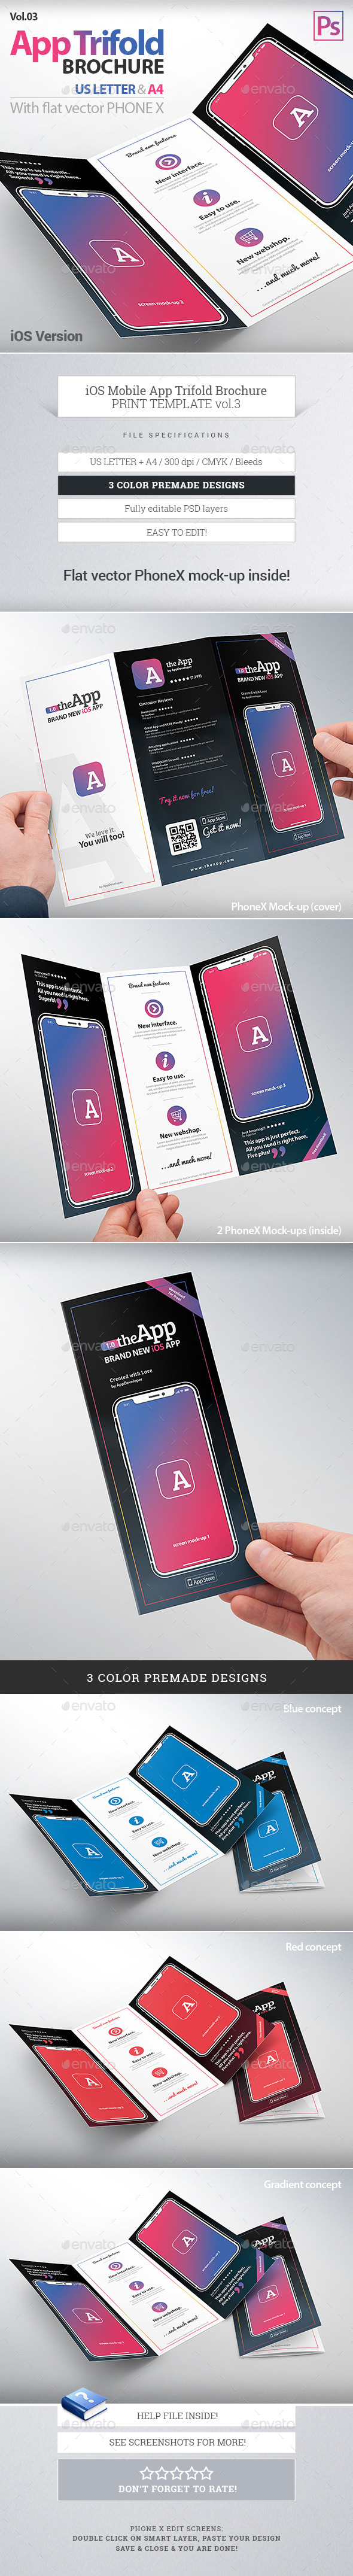 mobile app trifold brochure vol3 ios version us letter a4